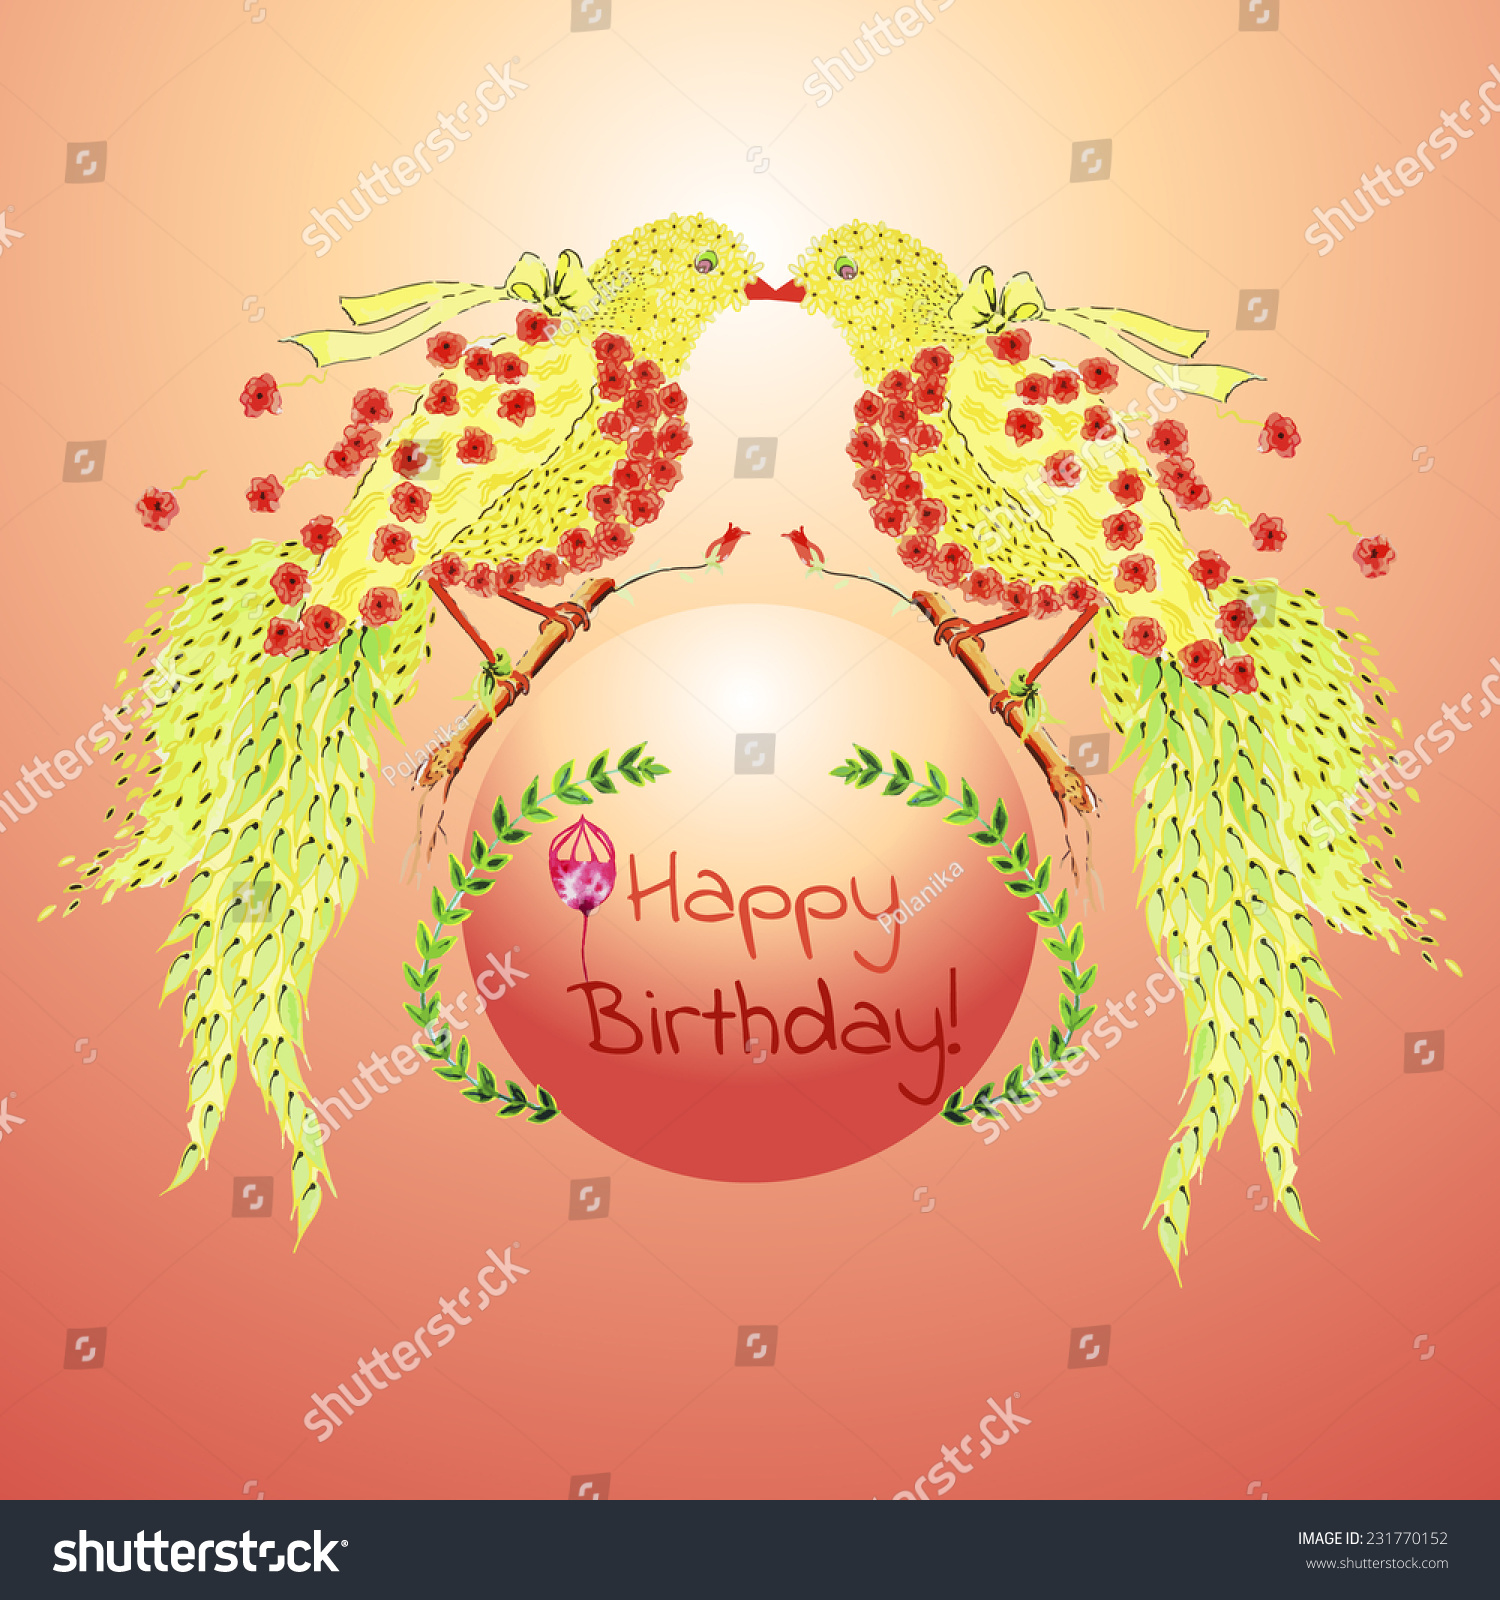 Happy Birthday Card Hand Painted Watercolor Stock Vector